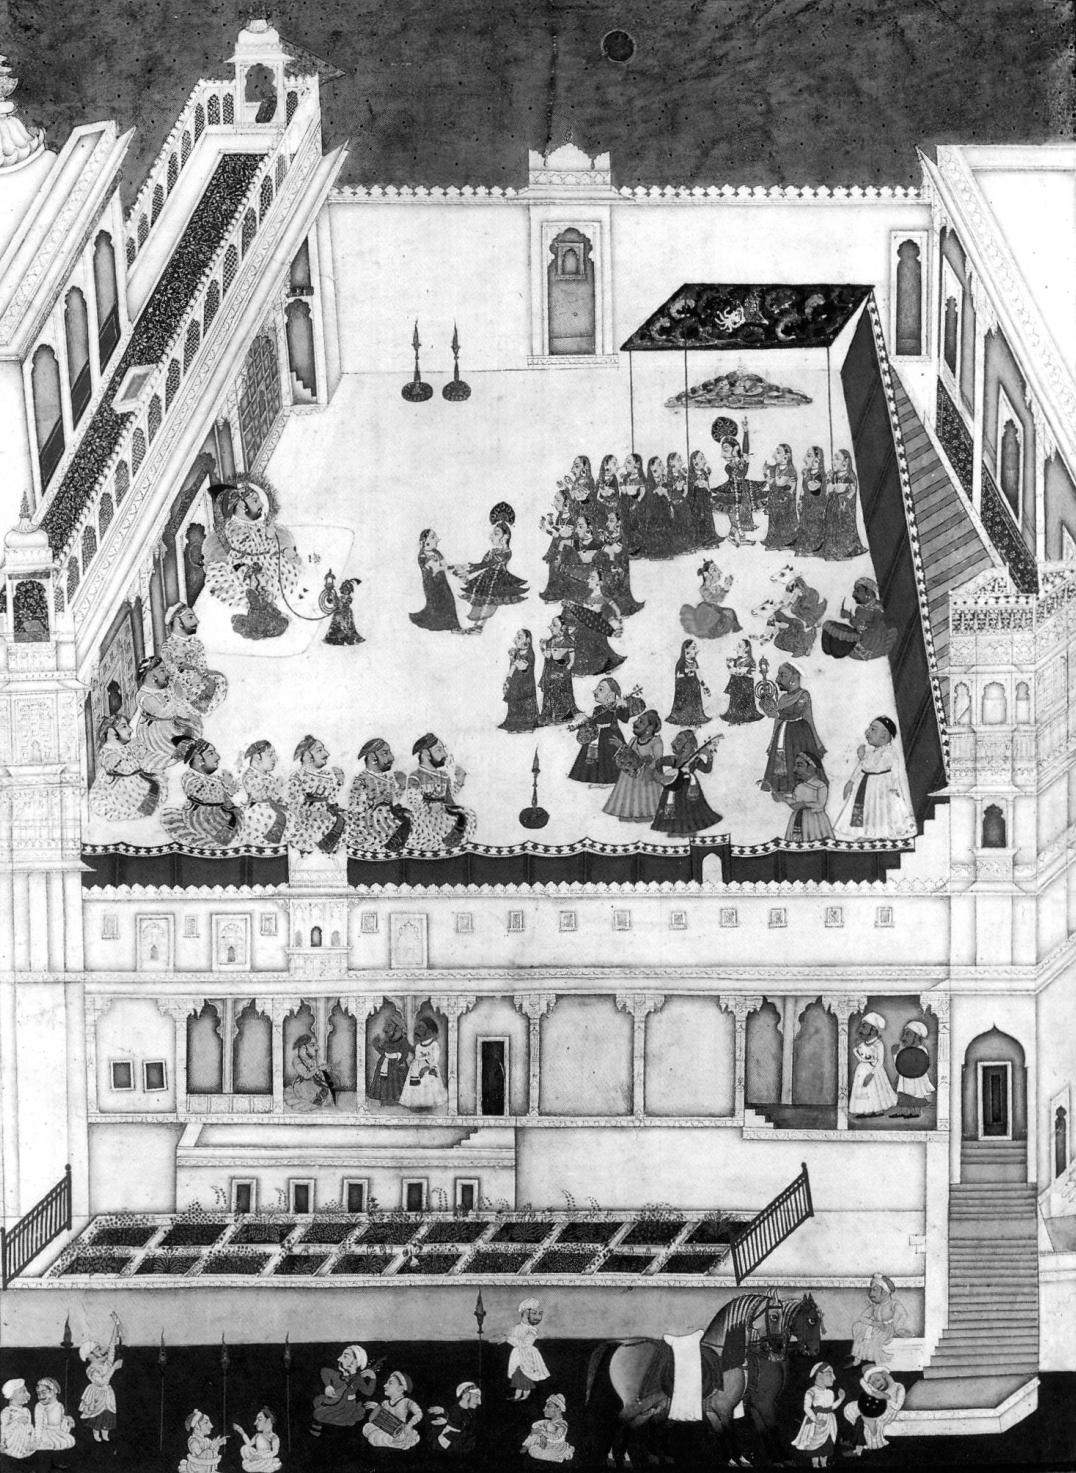 raslila essay Fig 2, maharana jagat singh at the raslila: ganesha, now known at the national gallery of victoria as maharana jagat singh ii attending a raslila performance fig 11, a page from a series of the sur sagar, now known at the national gallery of victoria as krishna and rhada from a sur sagar series.